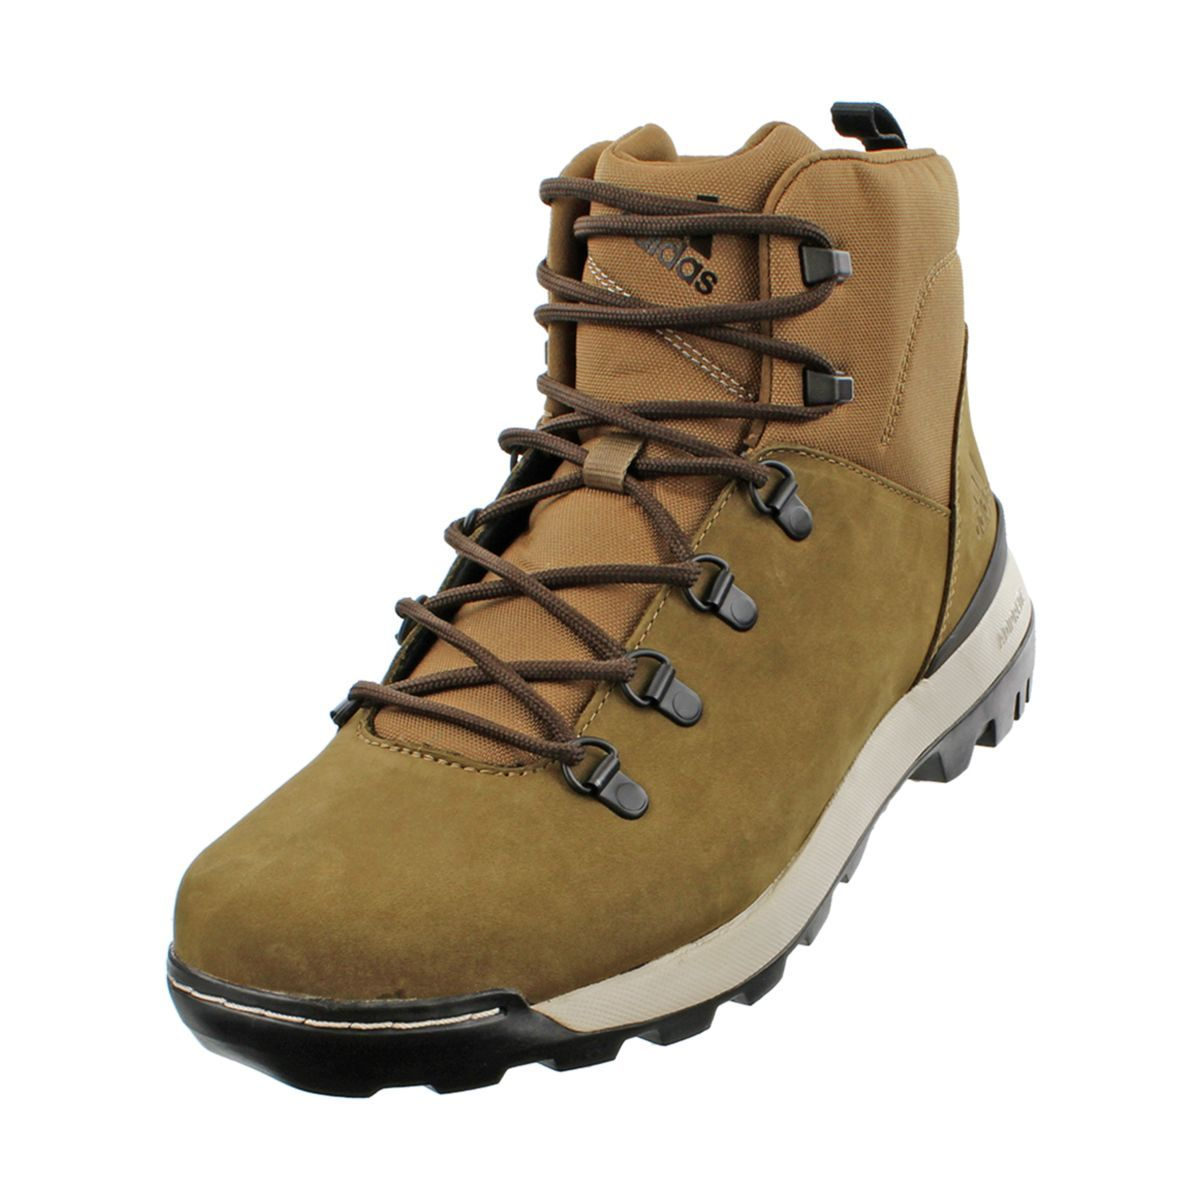 Adidas Outdoor Trail Cruiser Mid Boot Men's Brown Oxide